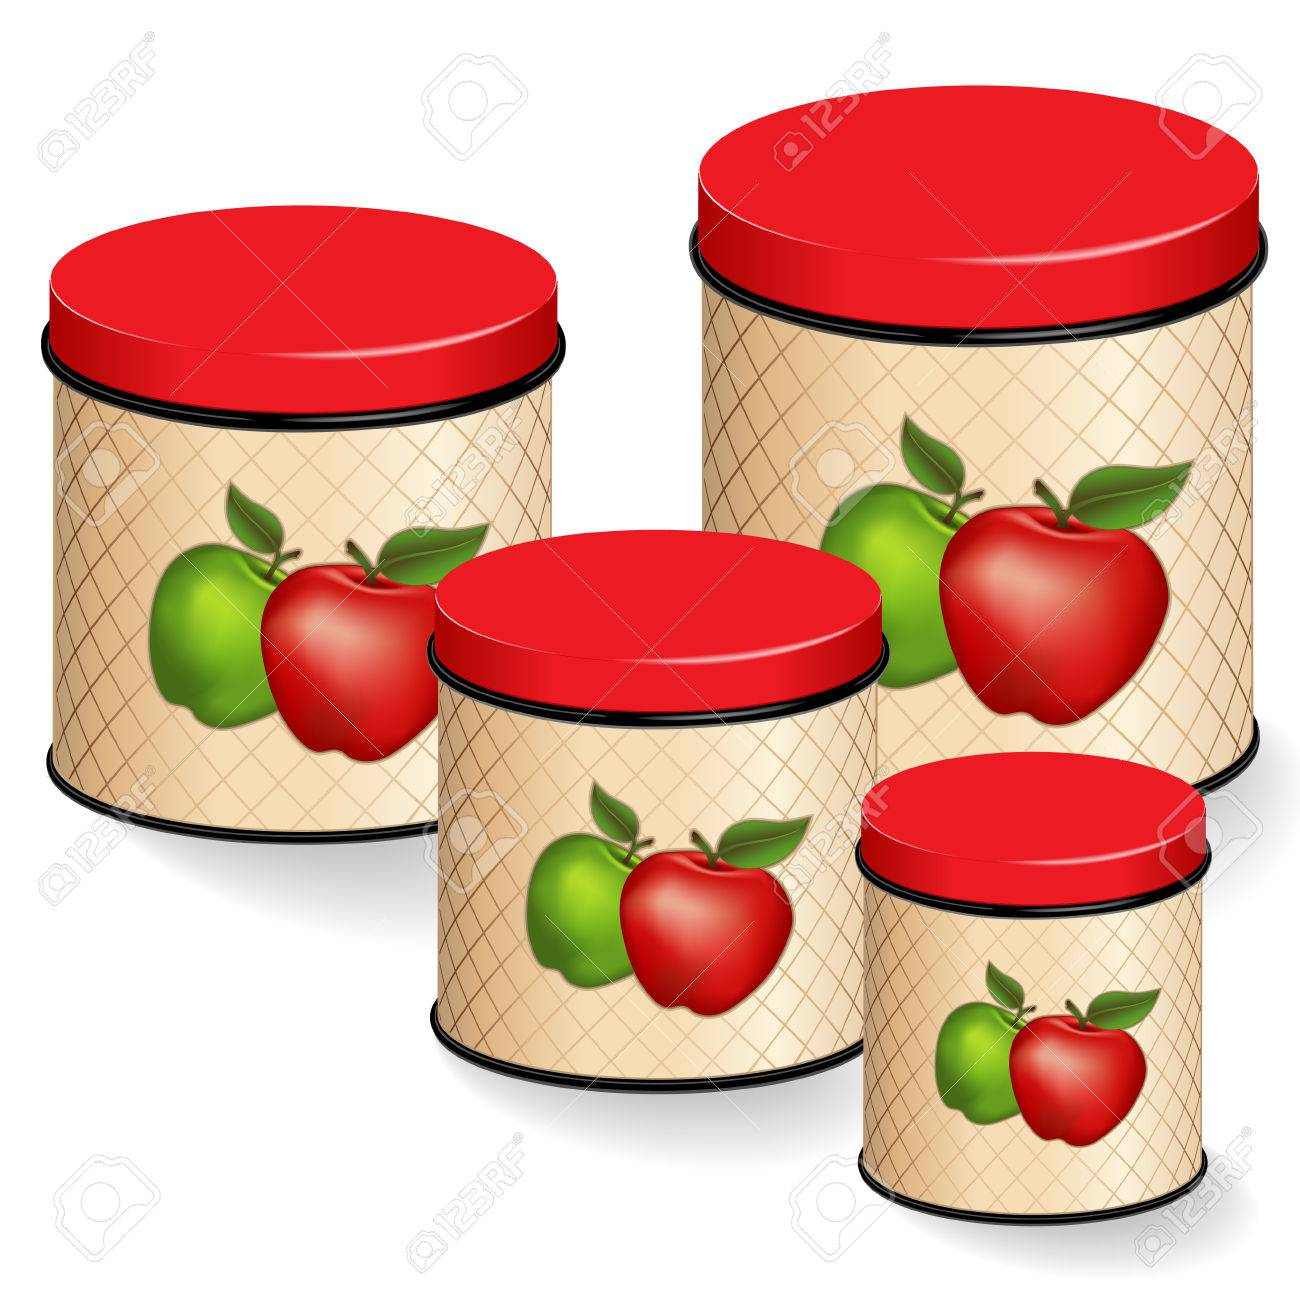 kitchen canisters set red and green apple design on lattice rh 123rf com